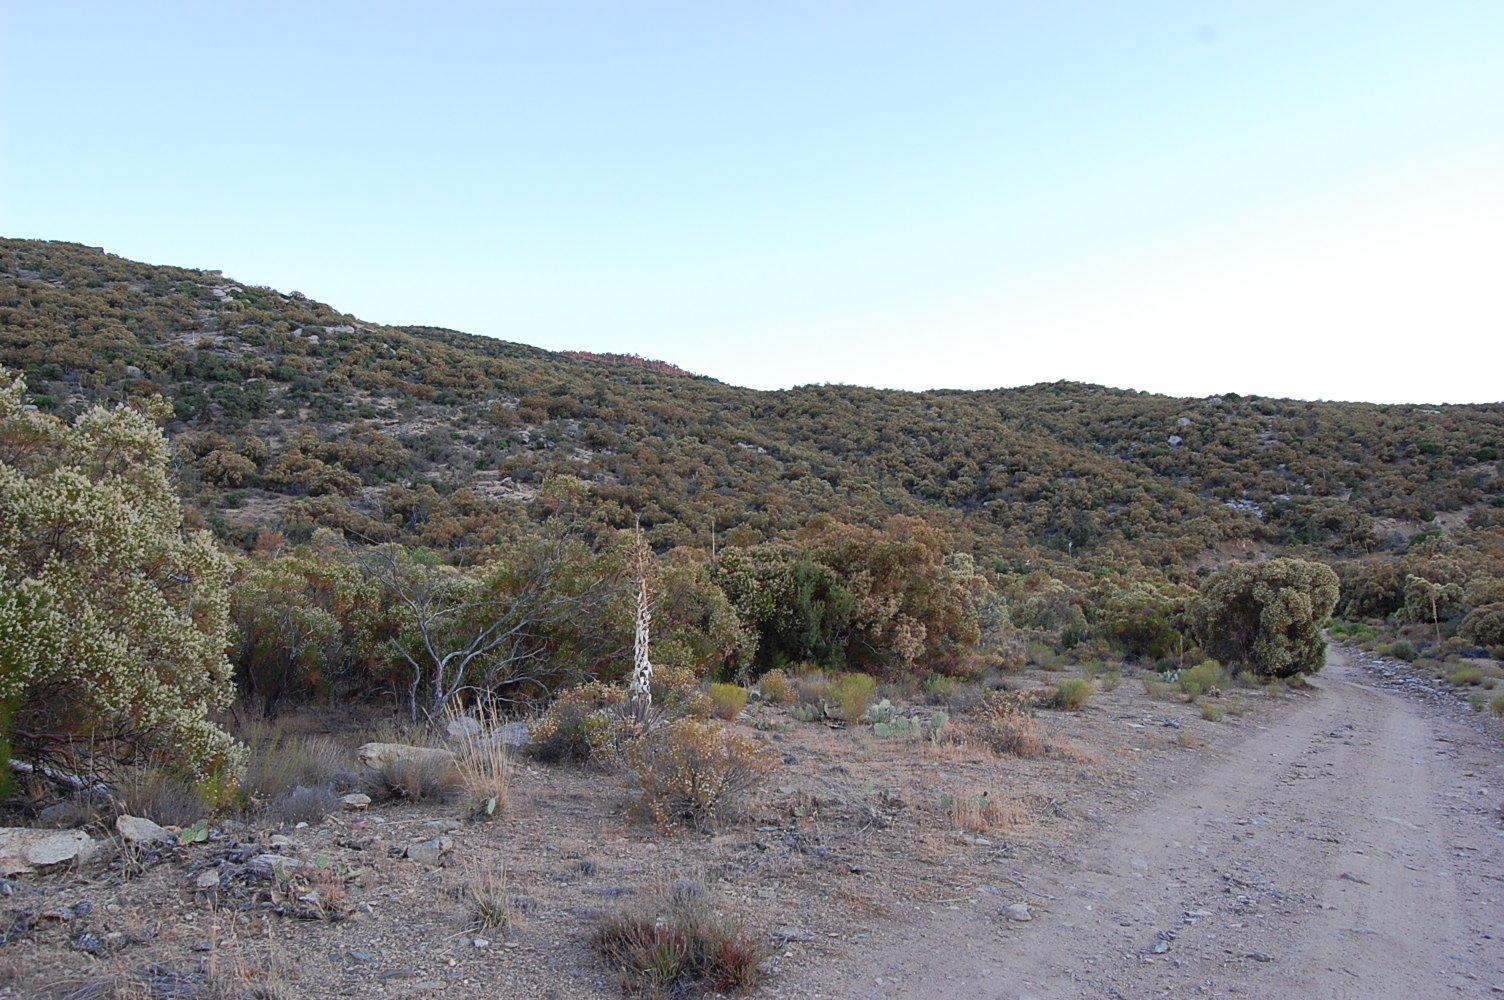 Magnificent 1 Acre Escape 45 minutes from Palm Springs - Image 1